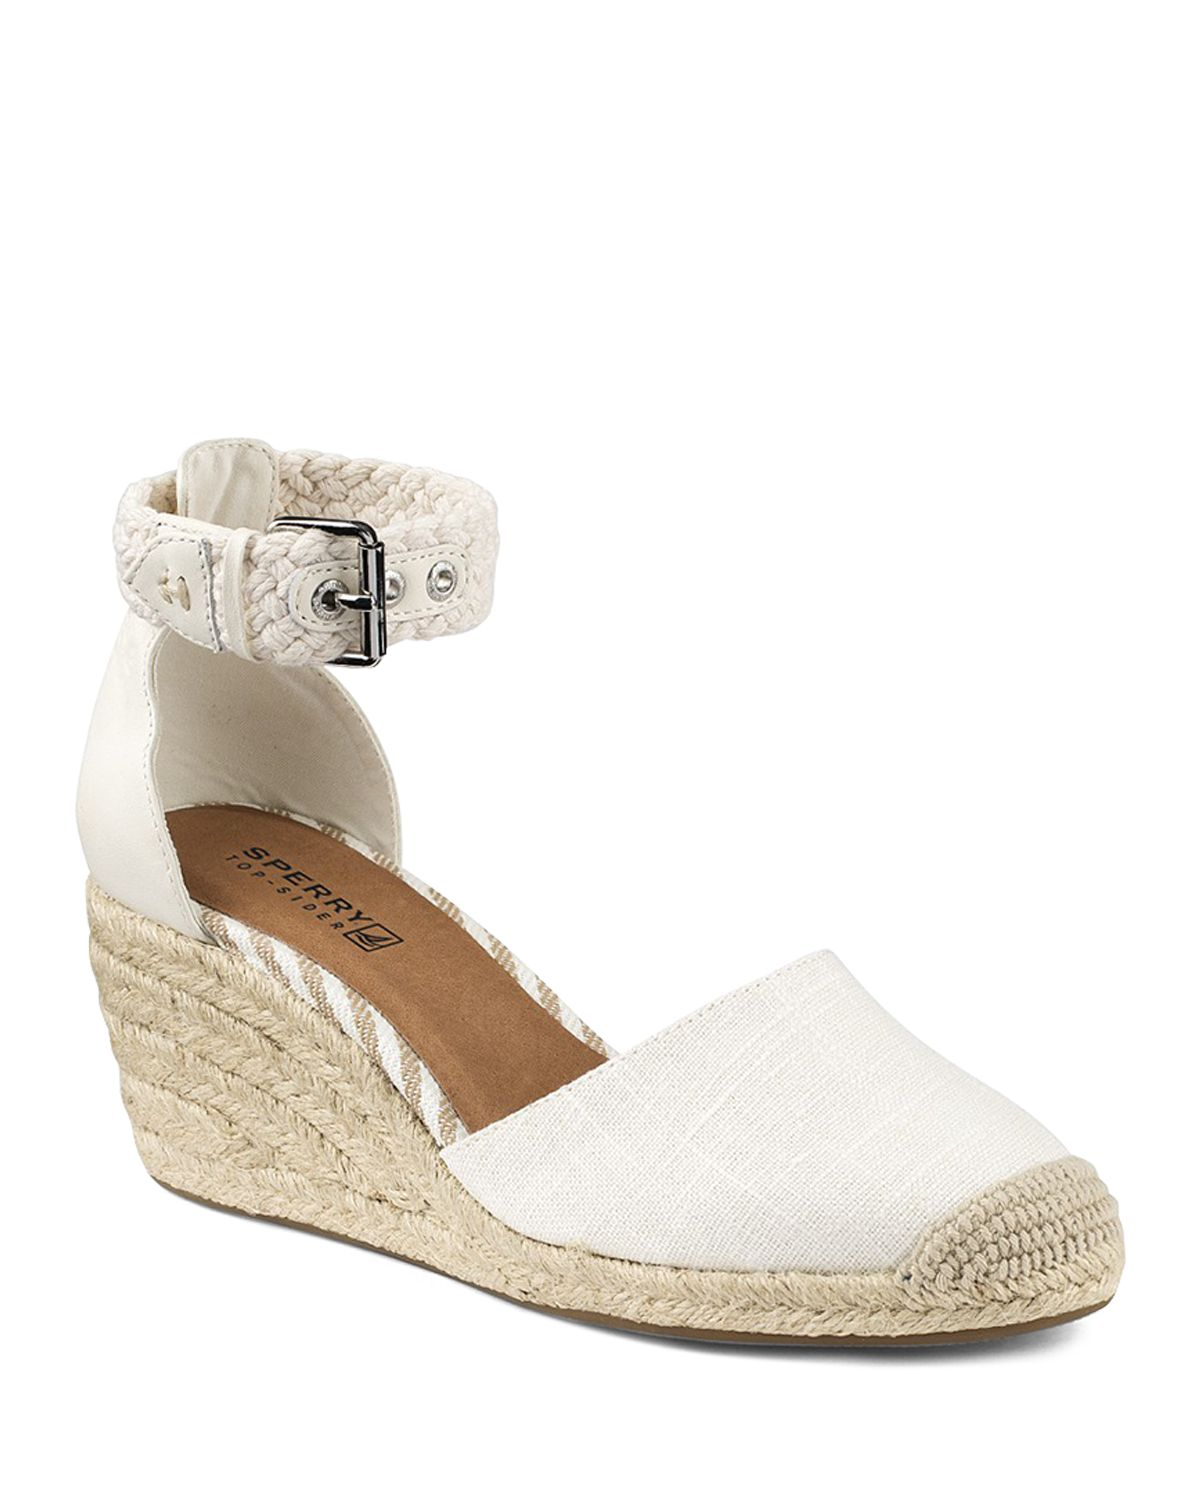 1e2202aef Sperry Top-Sider Espadrille Wedge Sandals - Valencia Closed Toe in ...